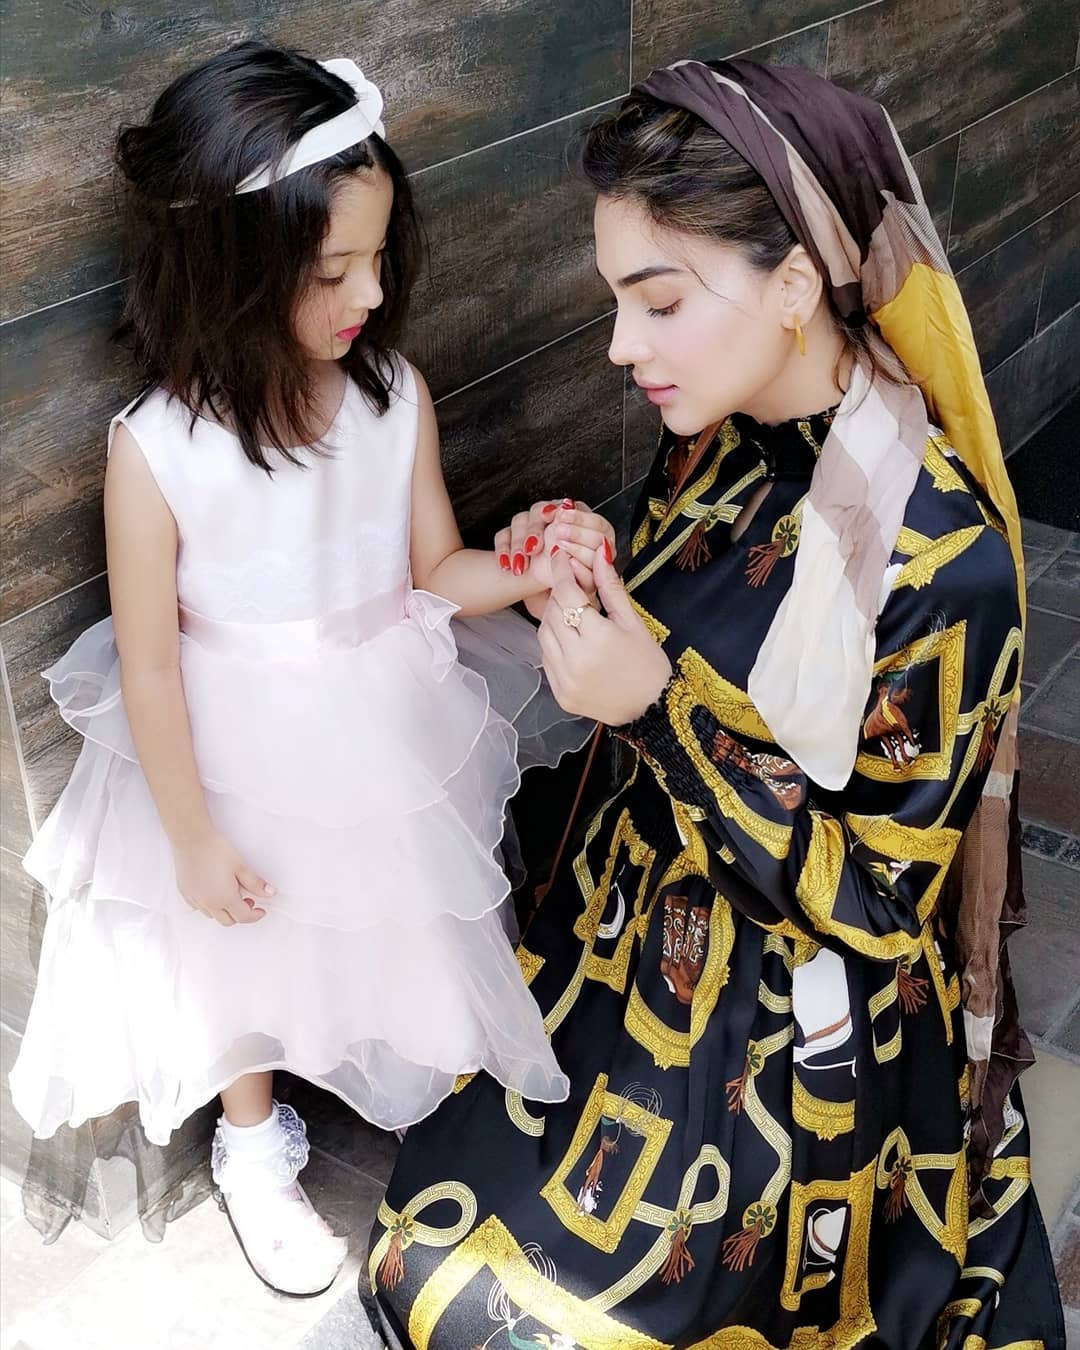 Awesome New Photos of Fiza Ali with her Daughter Faraal